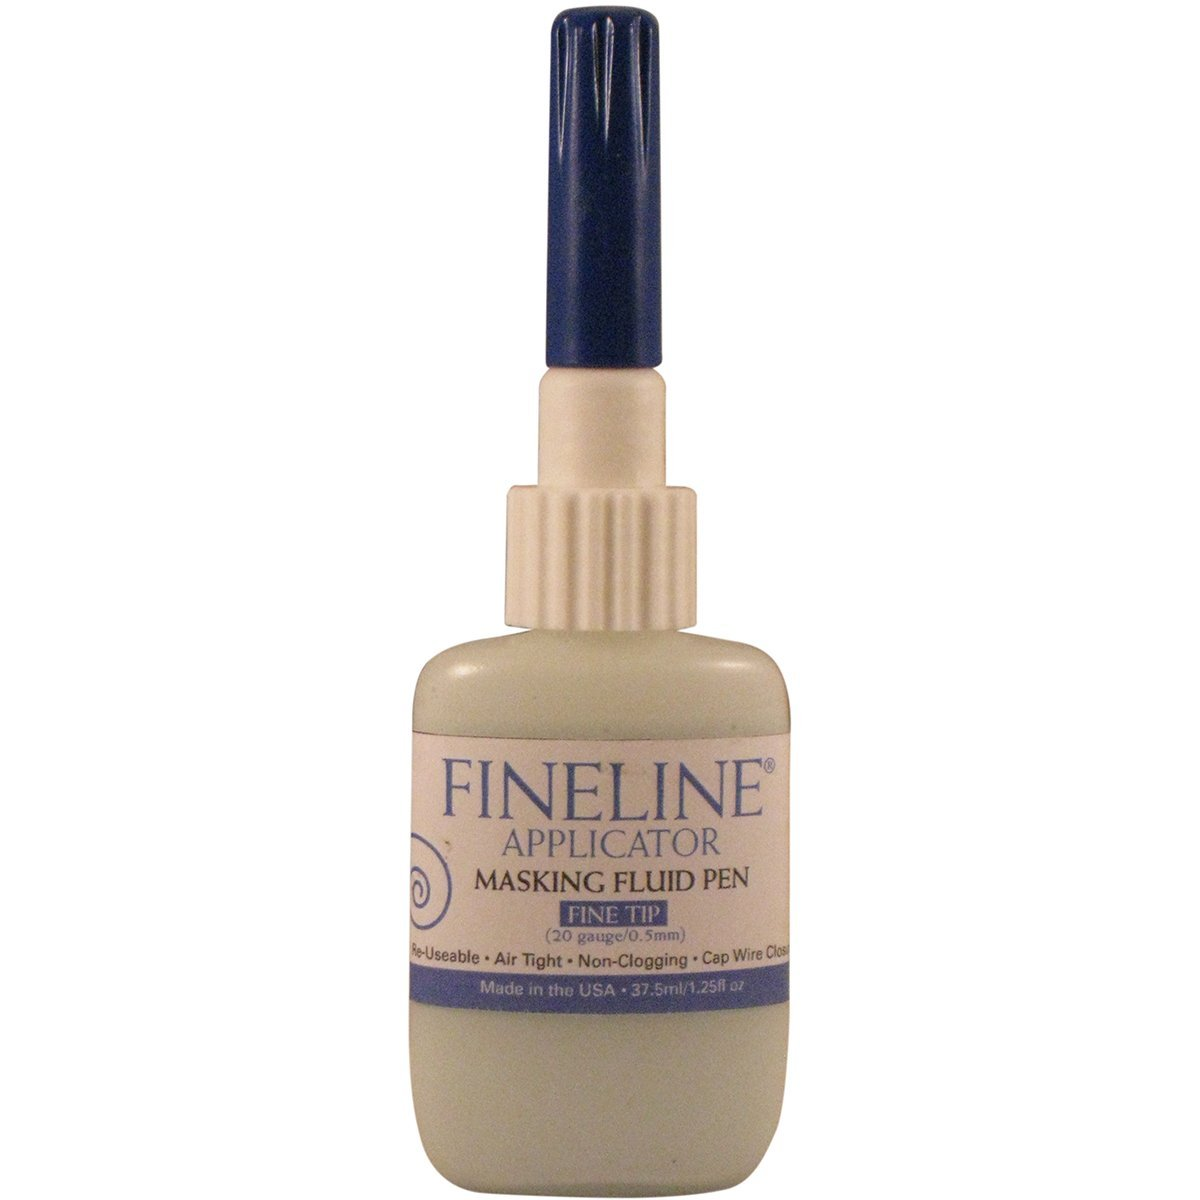 Fineline Applicator